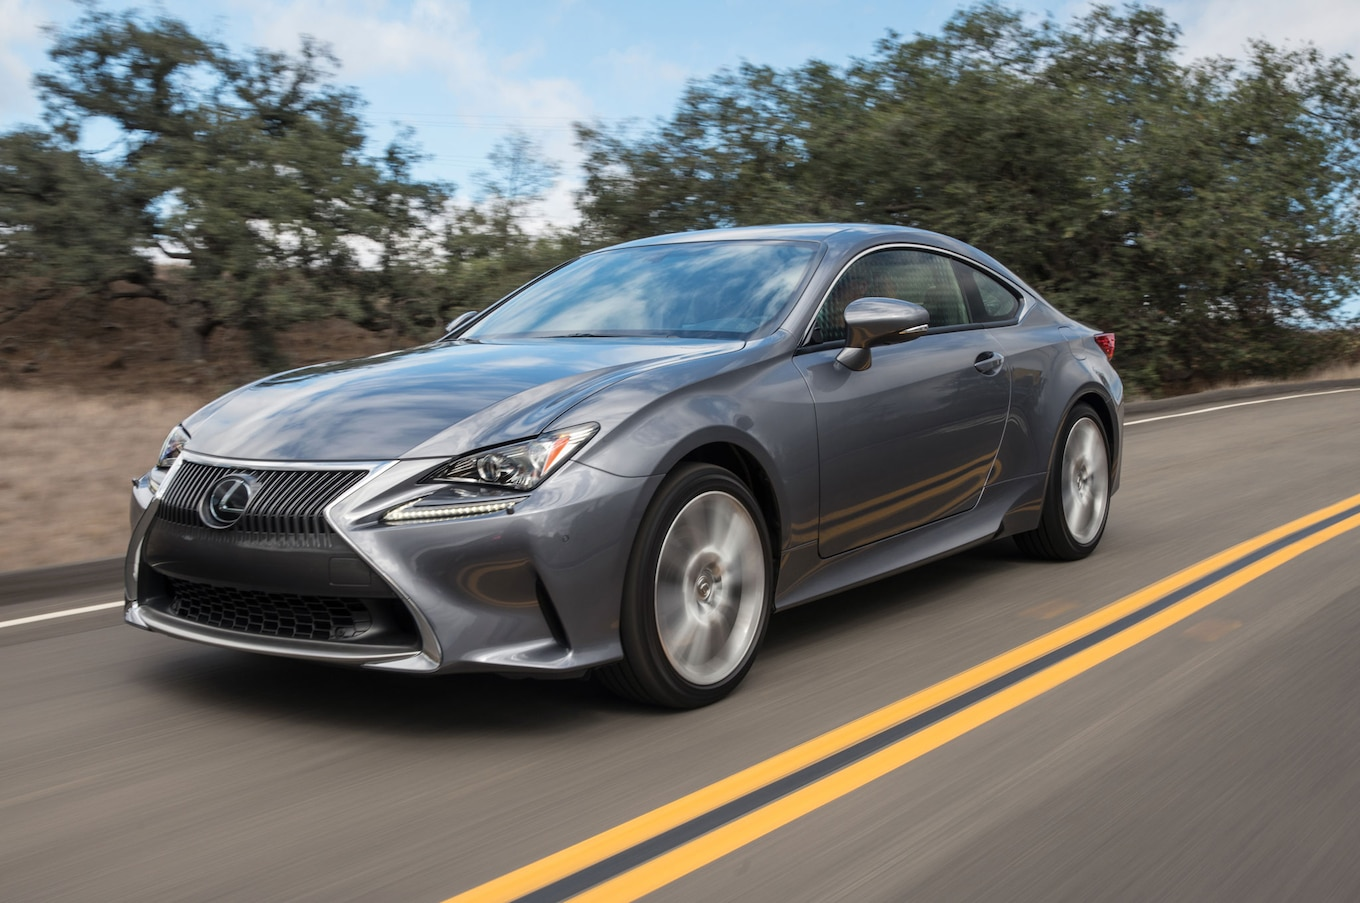 review grand new veloz 1.5 body kit lexus rc 300 reviews research and used models motor trend